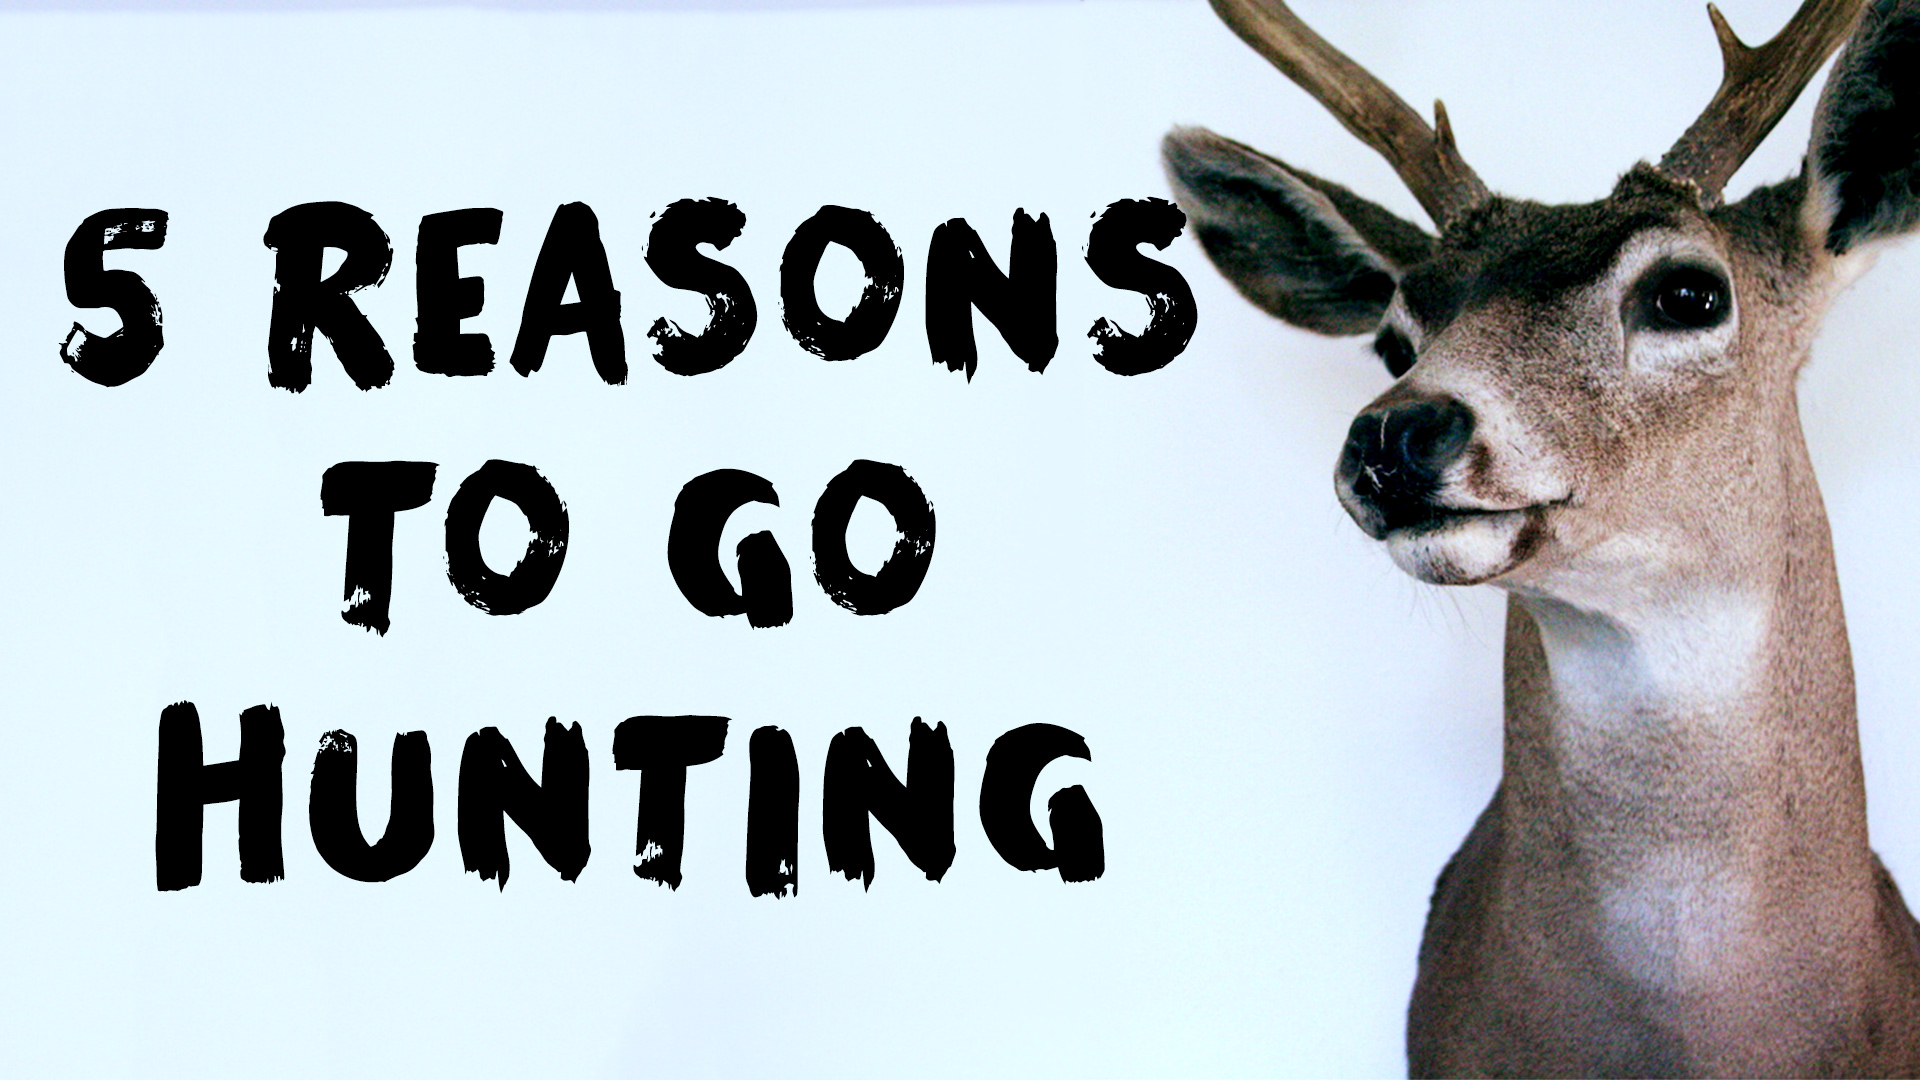 5 Reasons to Go Hunting